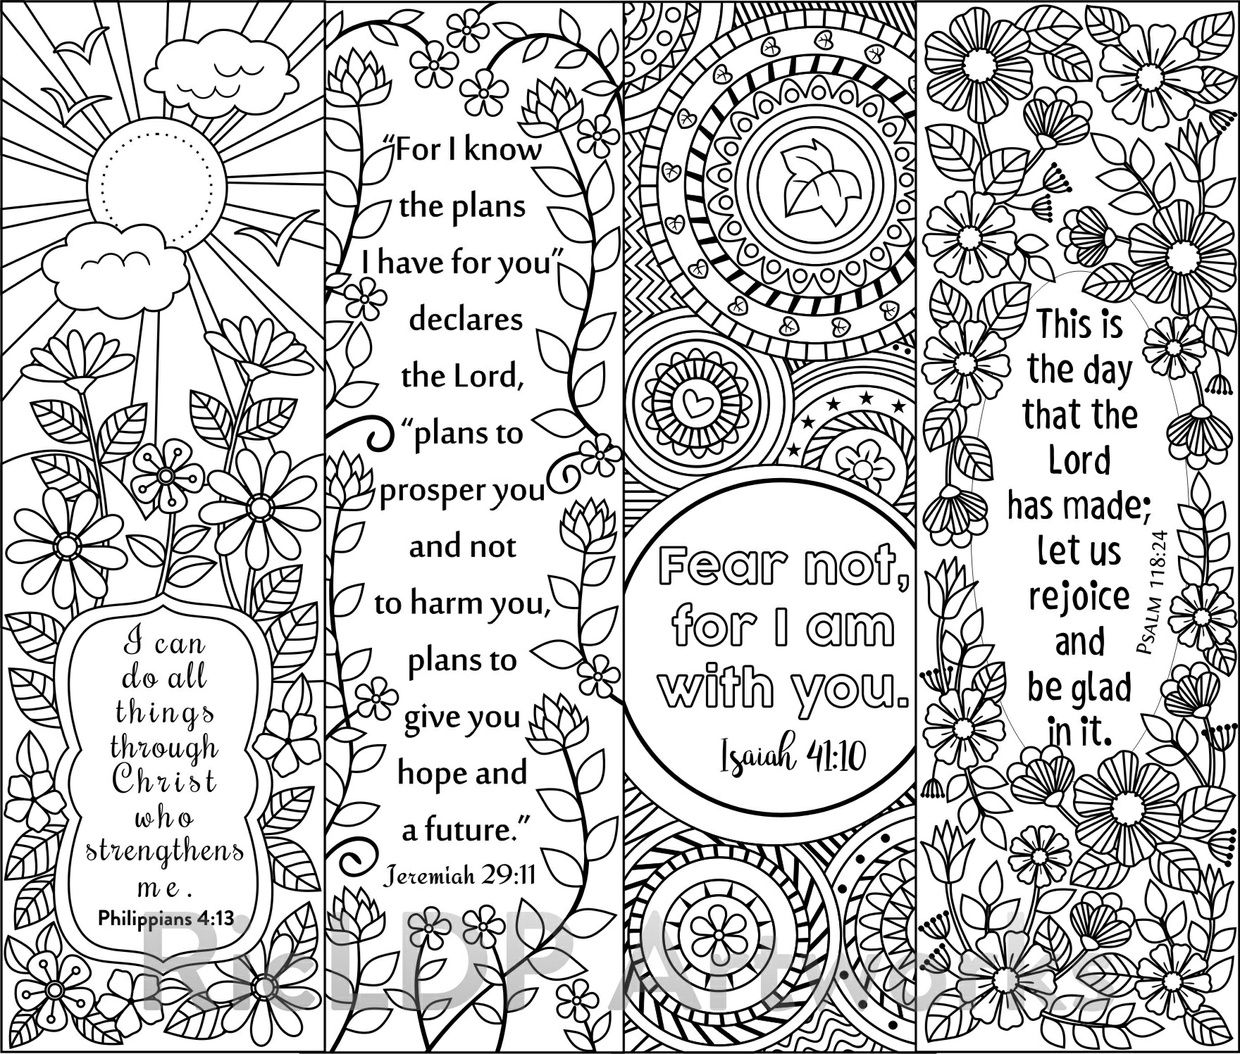 Bookmarks to color of dr king - 8 Bible Verse Coloring Bookmarks